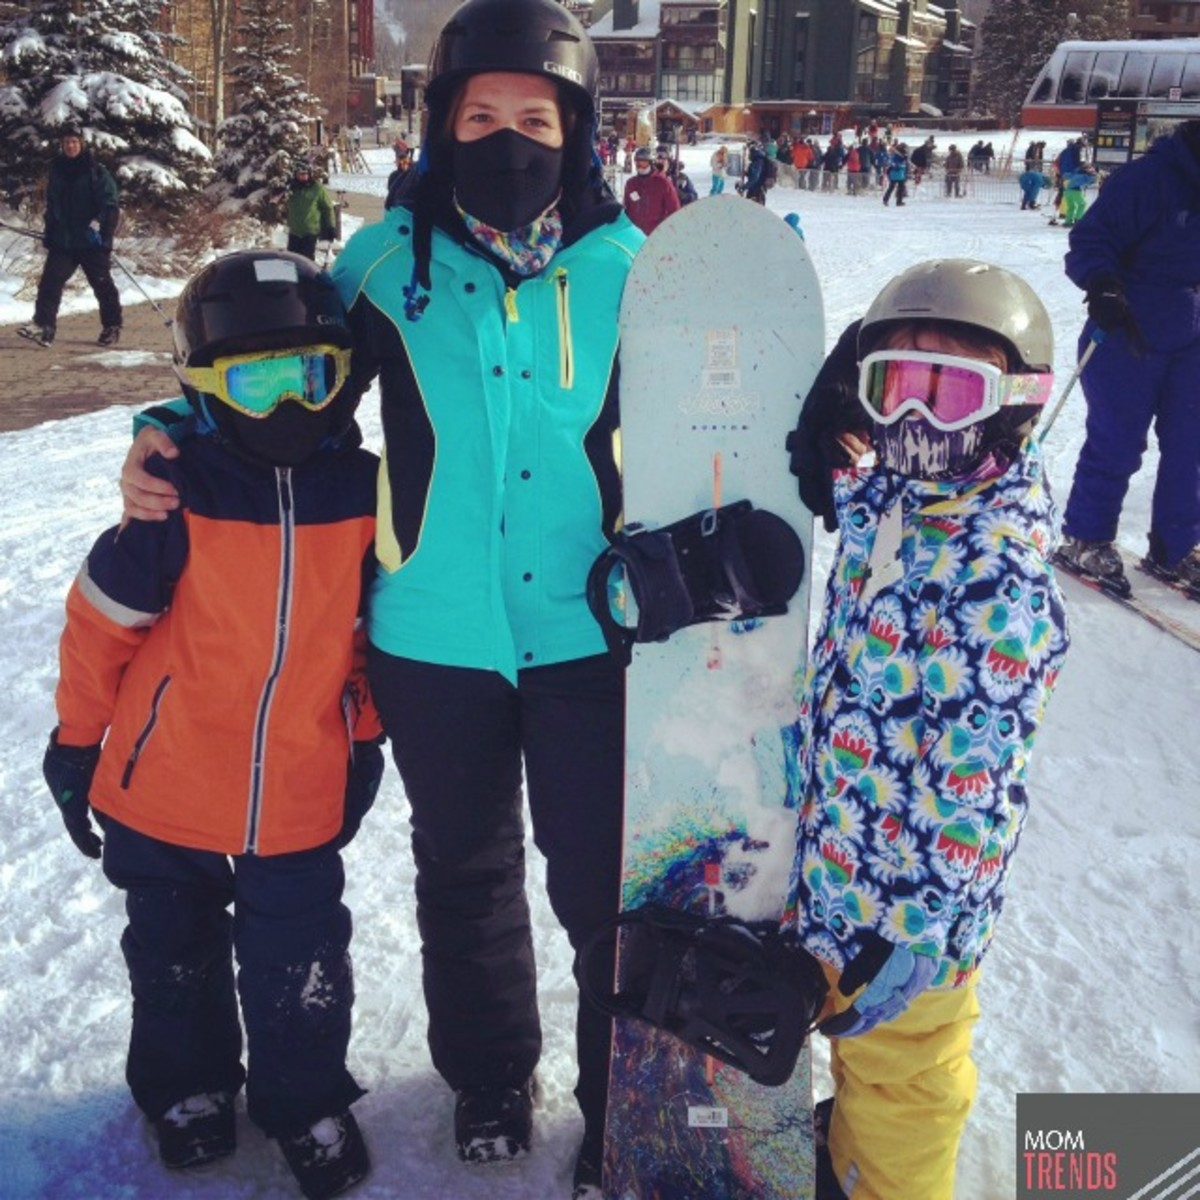 Savvy Sassy Moms Snowboarding with Kids